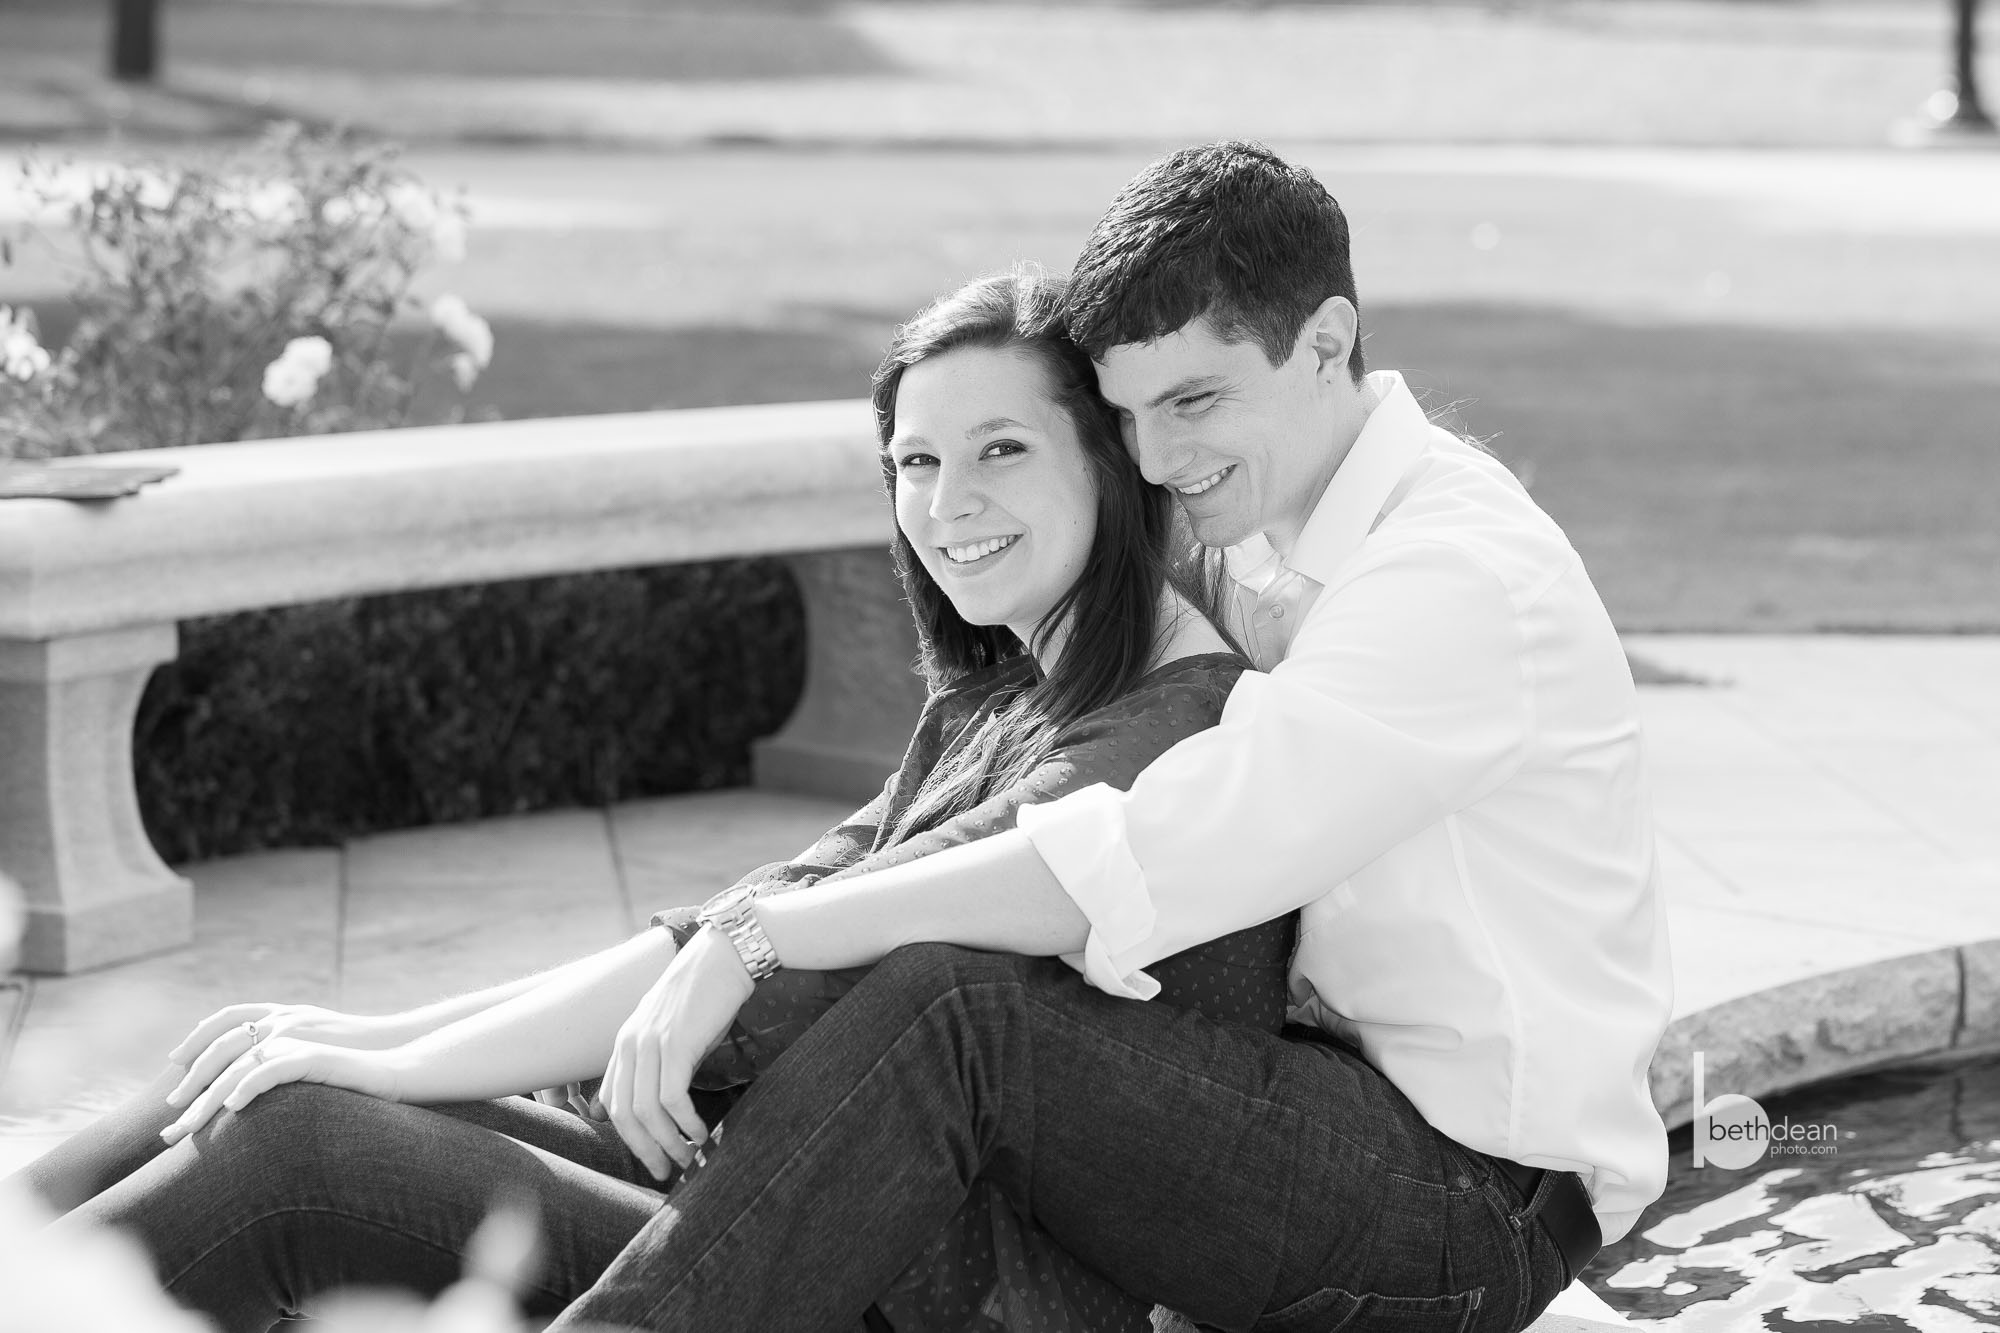 Beth Dean Photography - engagement photos in OKC